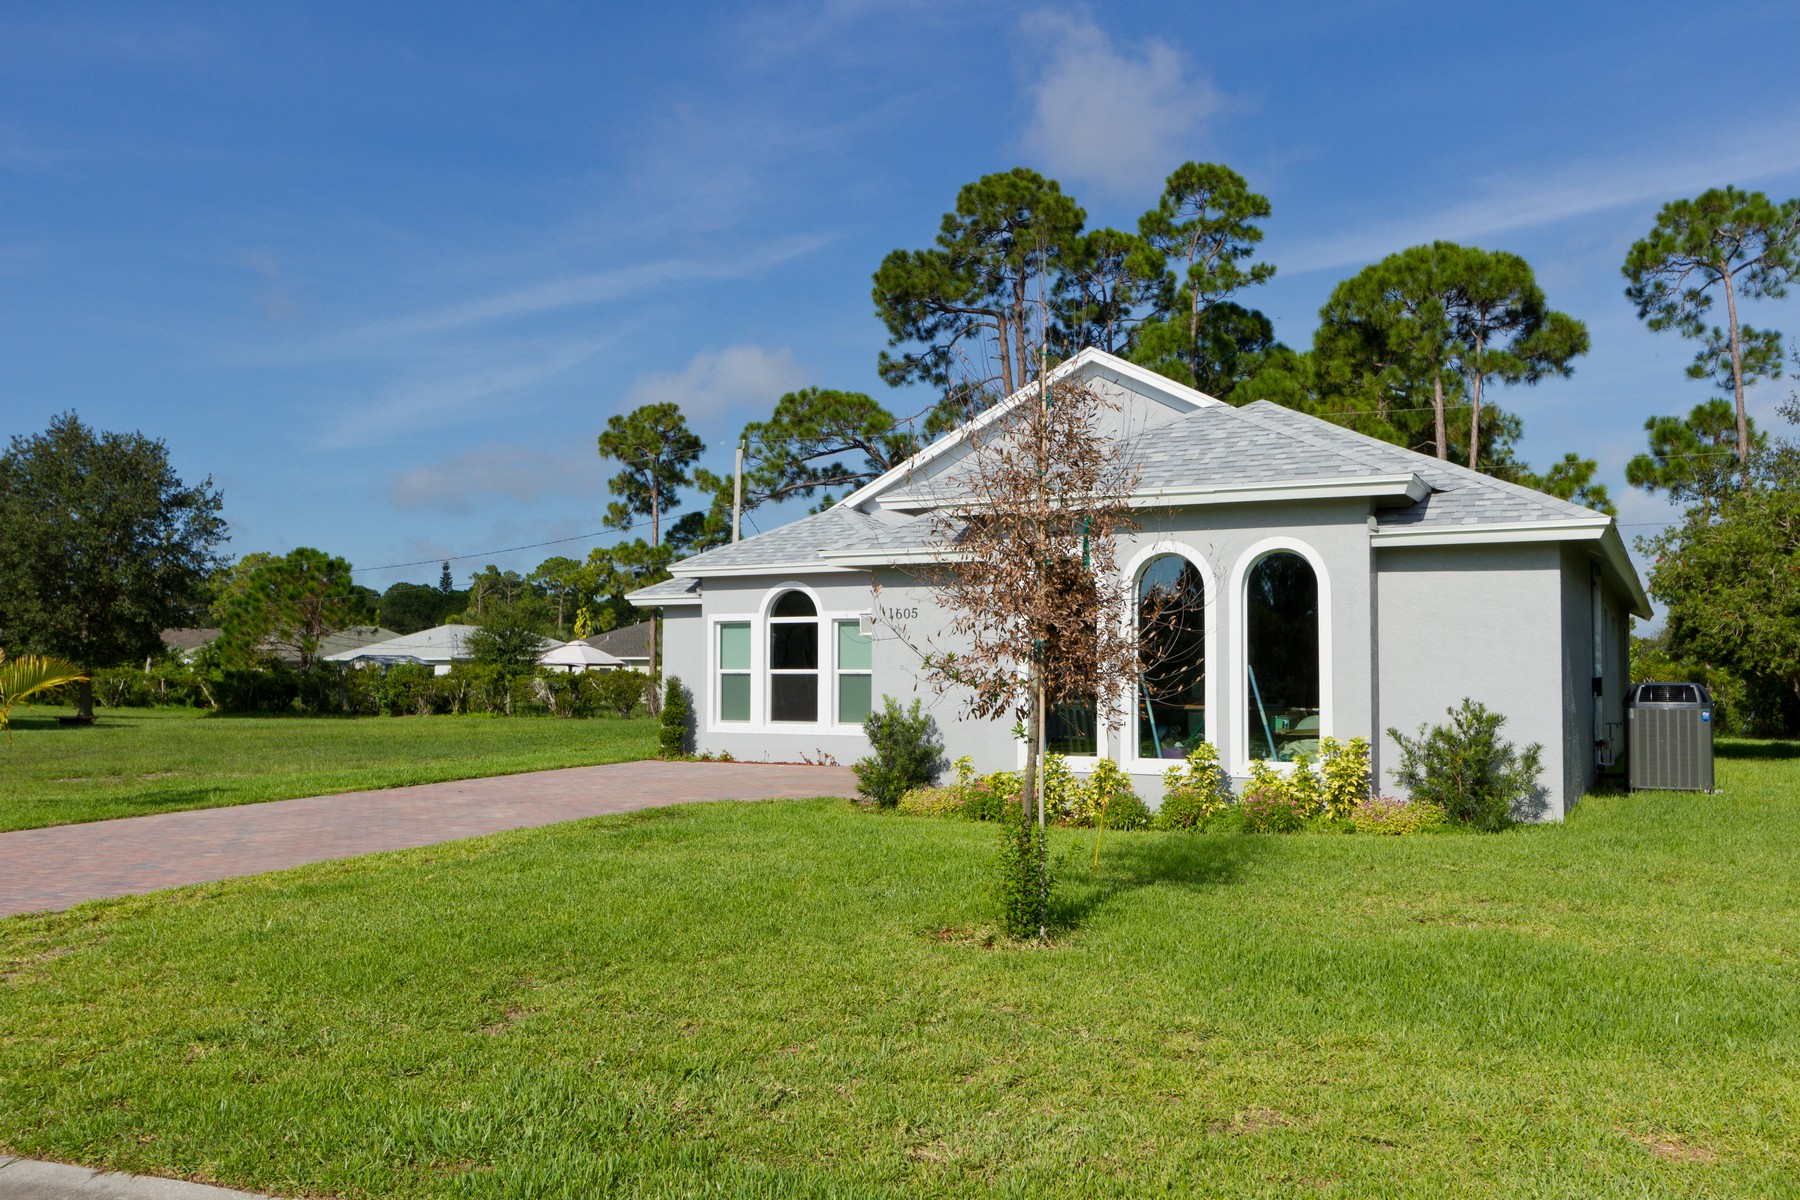 Property for Sale at Tucked Away on a Quiet Cul-De-Sac. 1630 16th Court SW Vero Beach, Florida 32962 United States